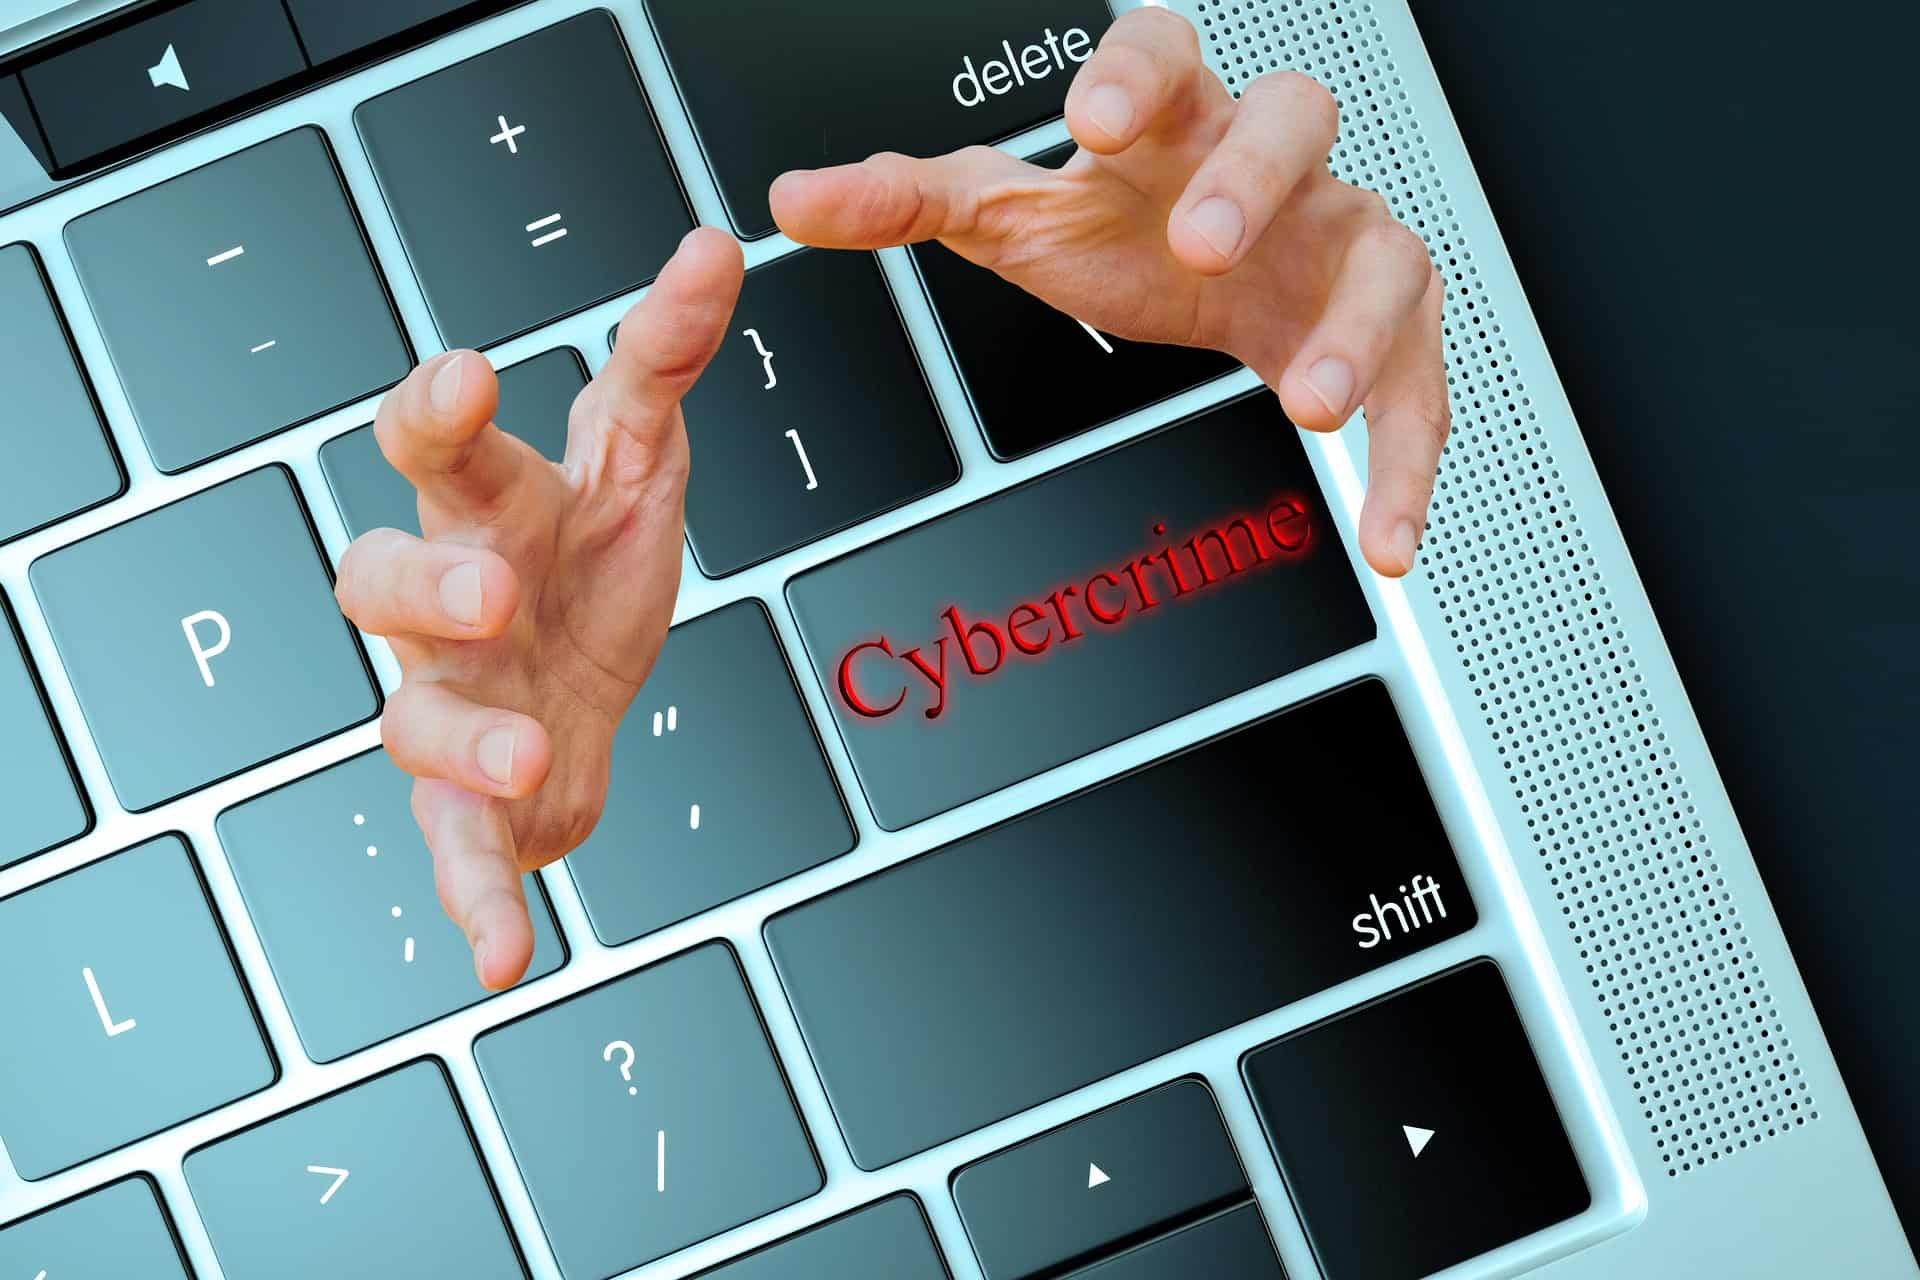 send effects of cyber crimes